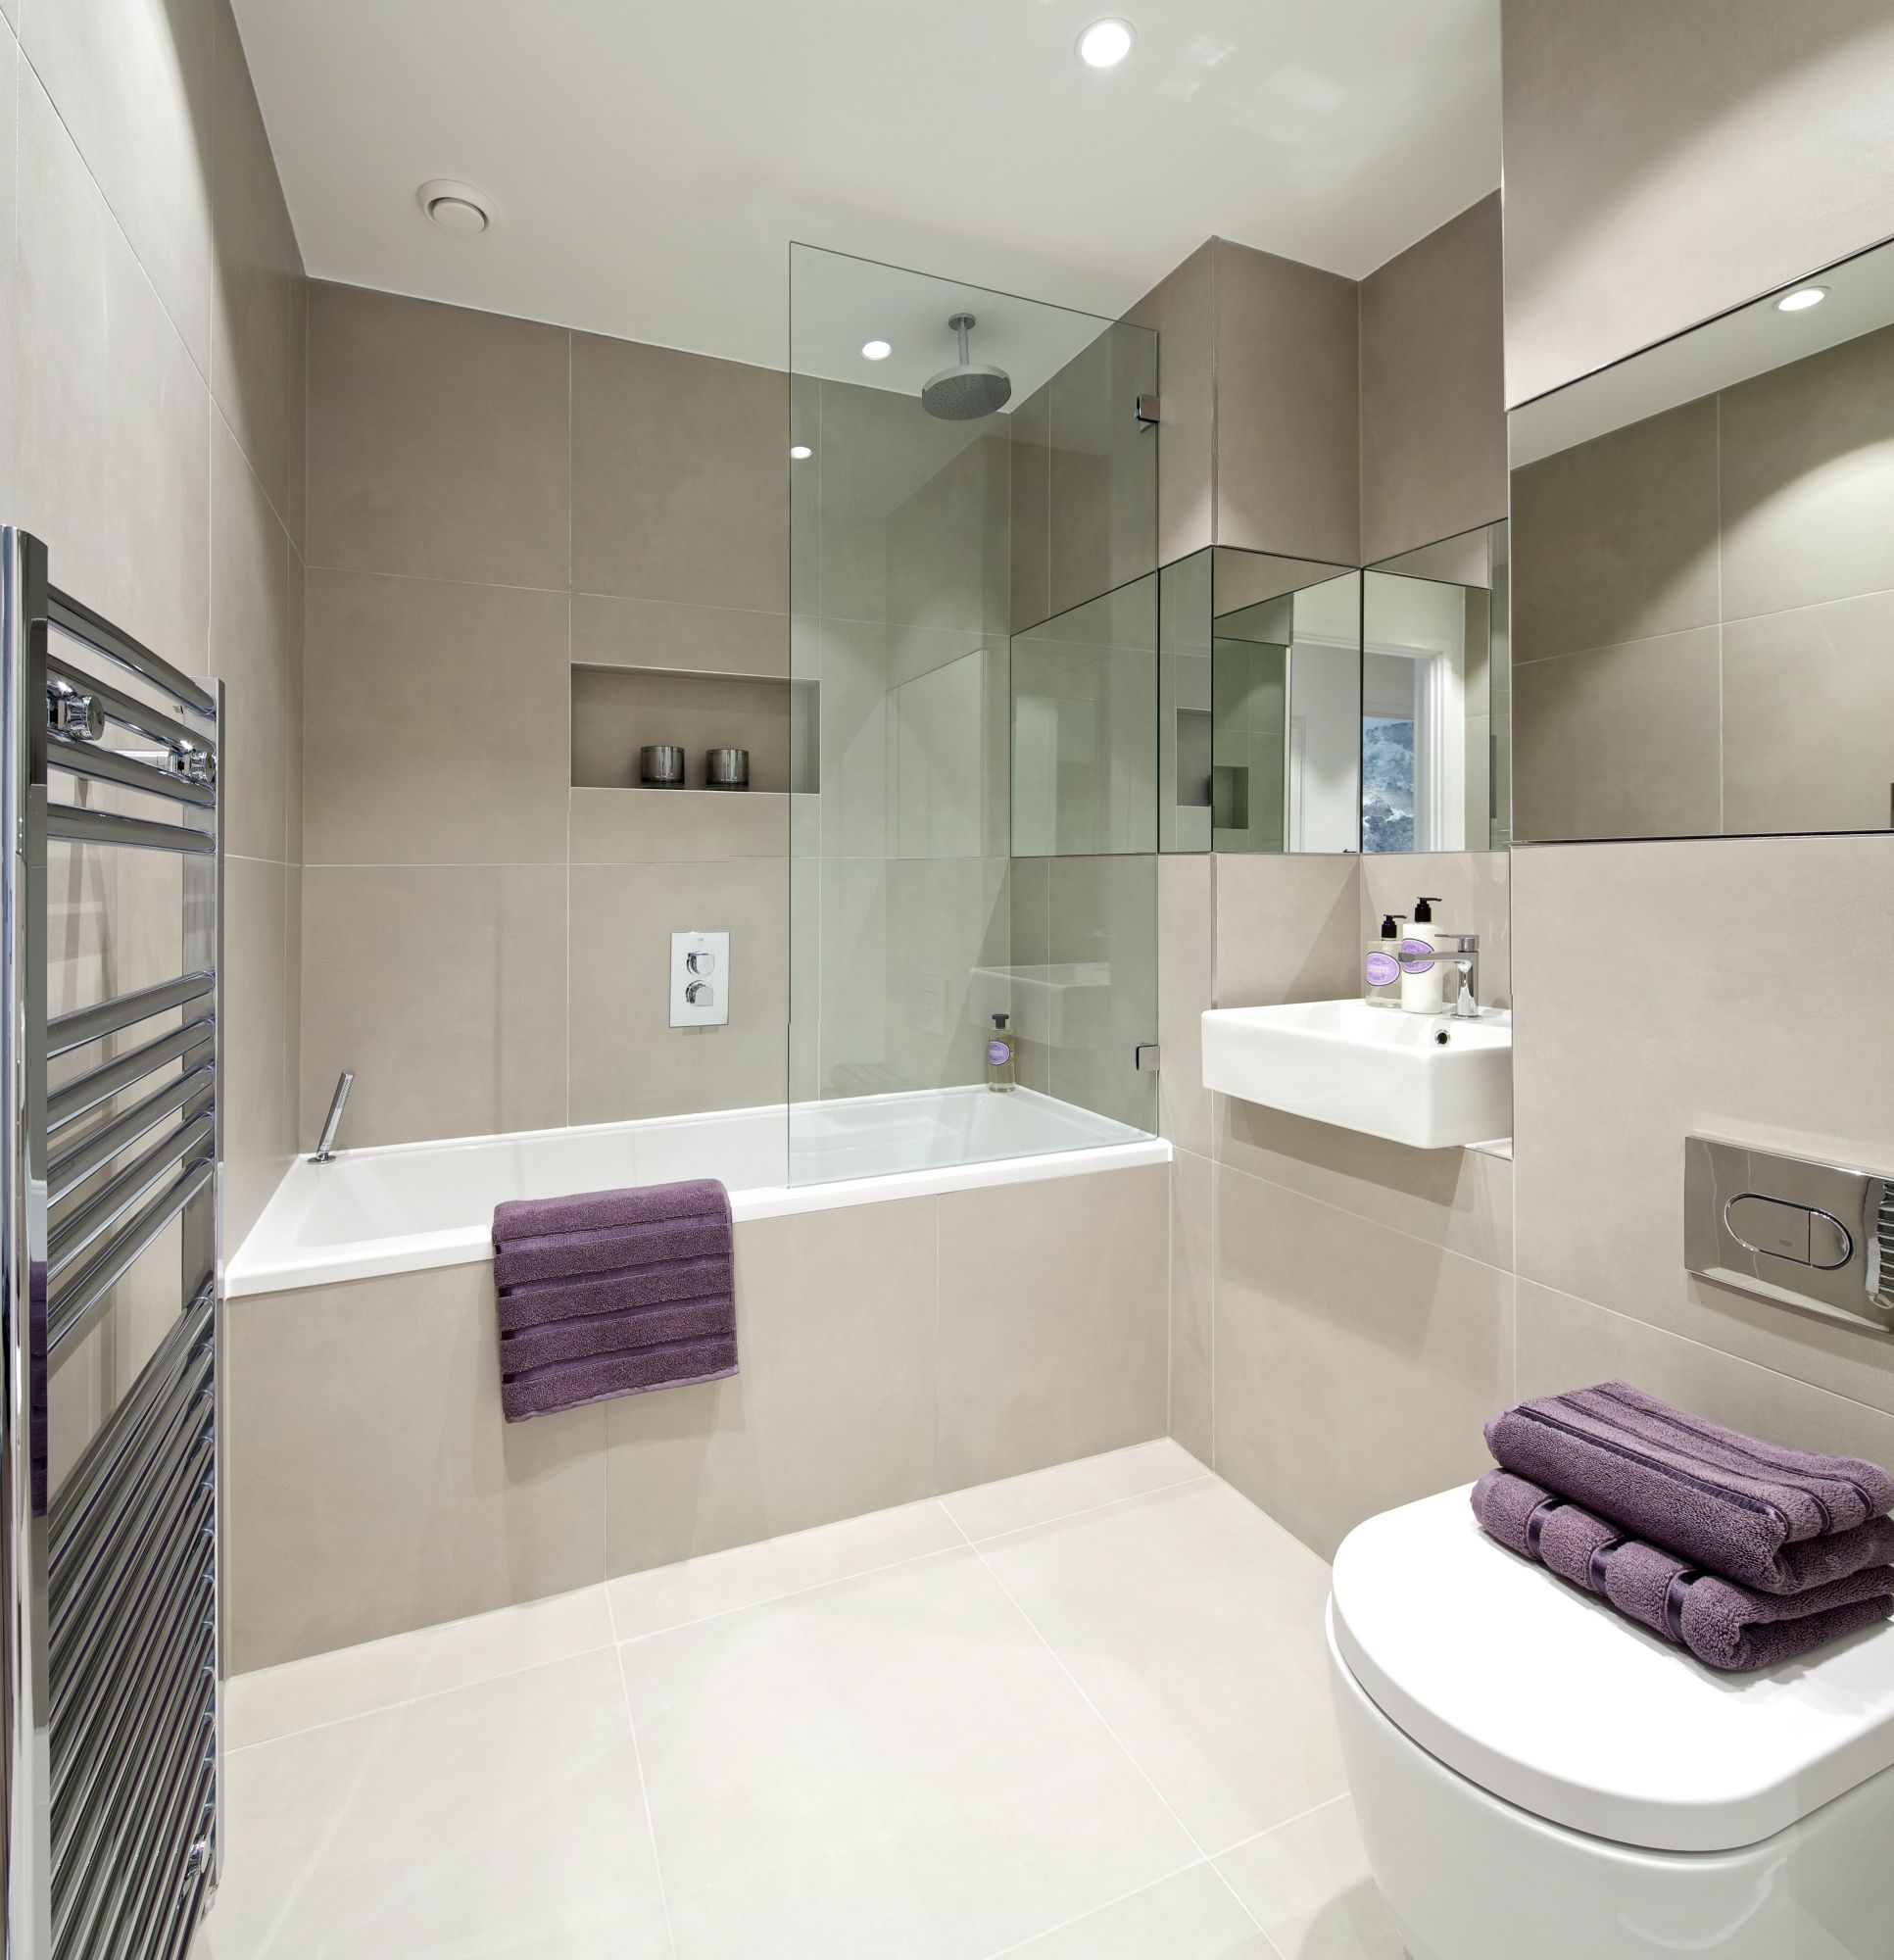 stunning home interiors   Bathroom   Another Stunning Show Home     stunning home interiors   Bathroom   Another Stunning Show Home Design By  Suna Interior Design